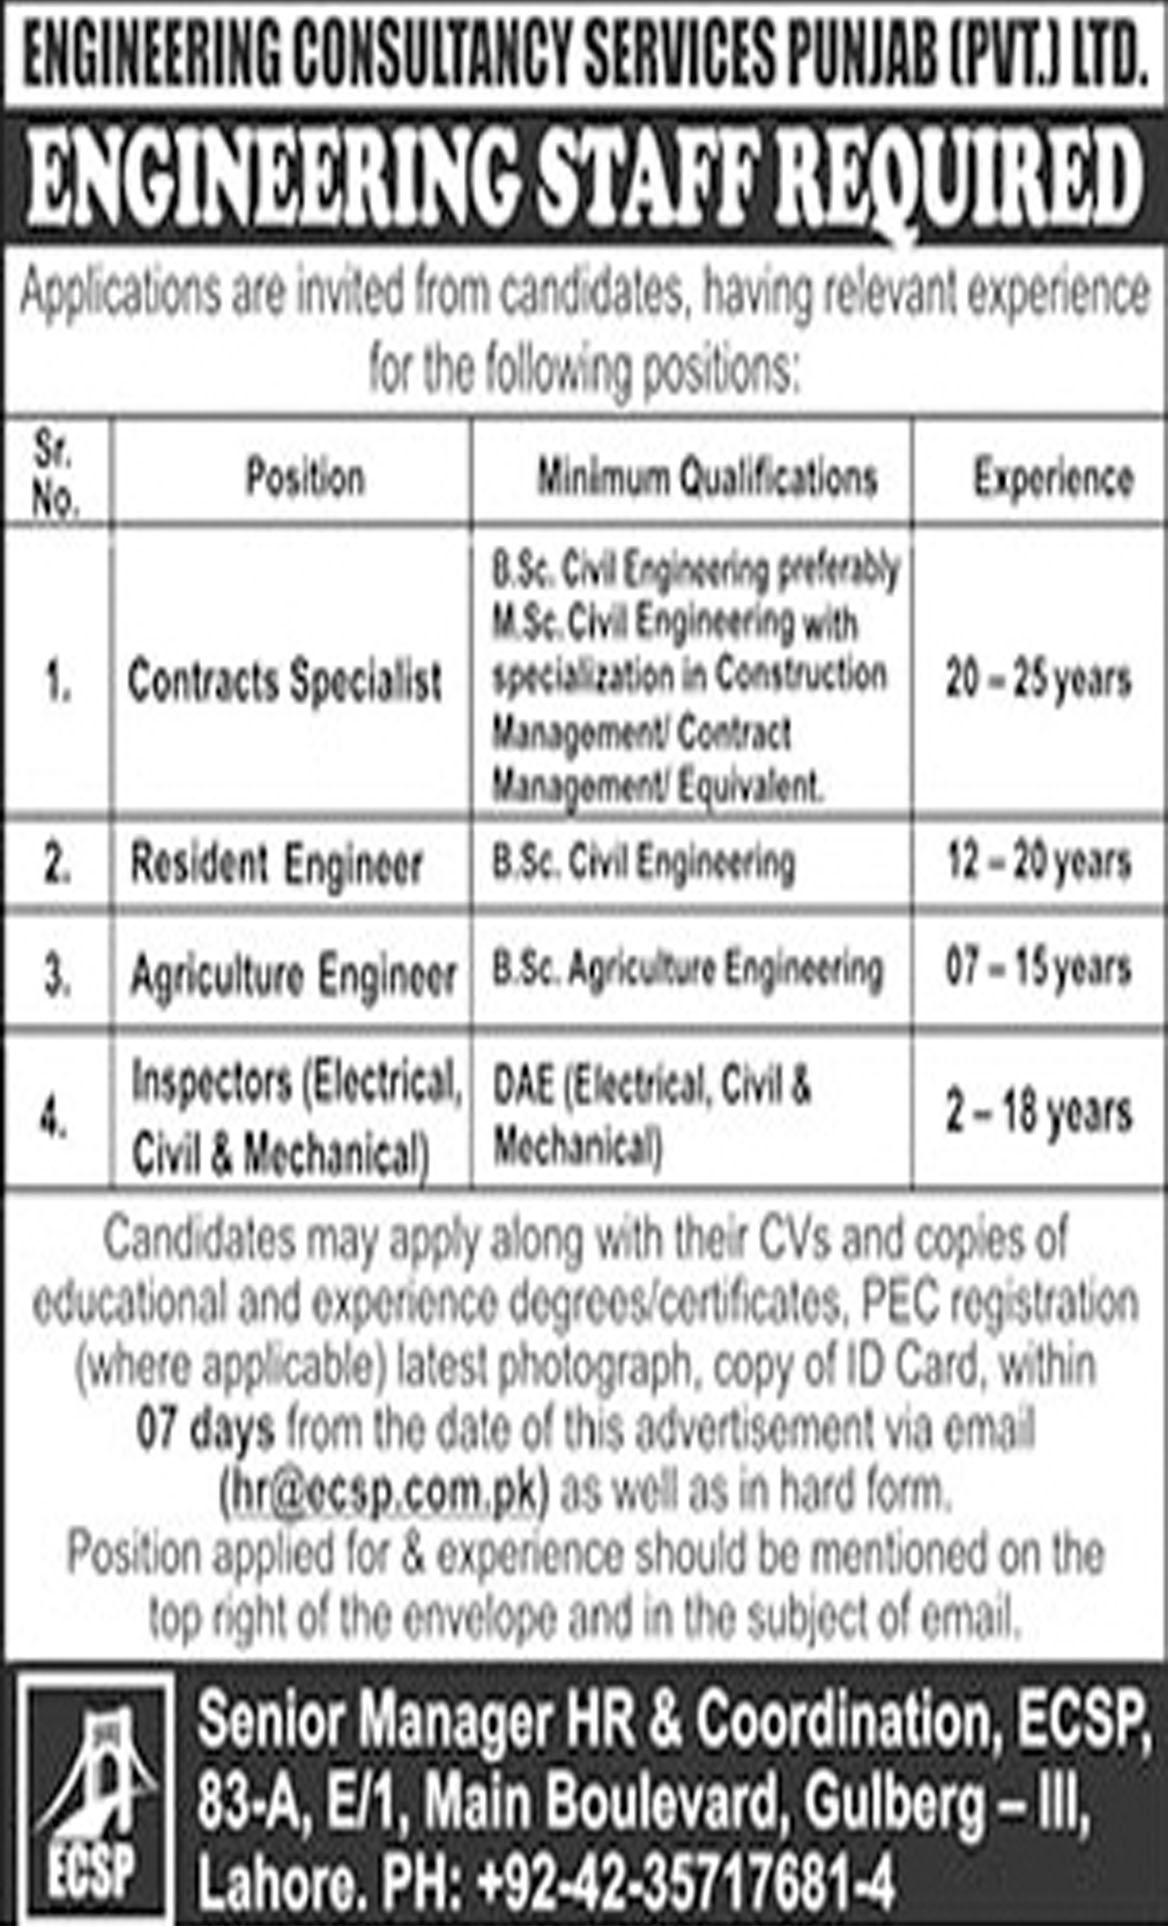 Jobs In Engineering Consultancy Services Punjab Pvt Limited 22 Oct 2018